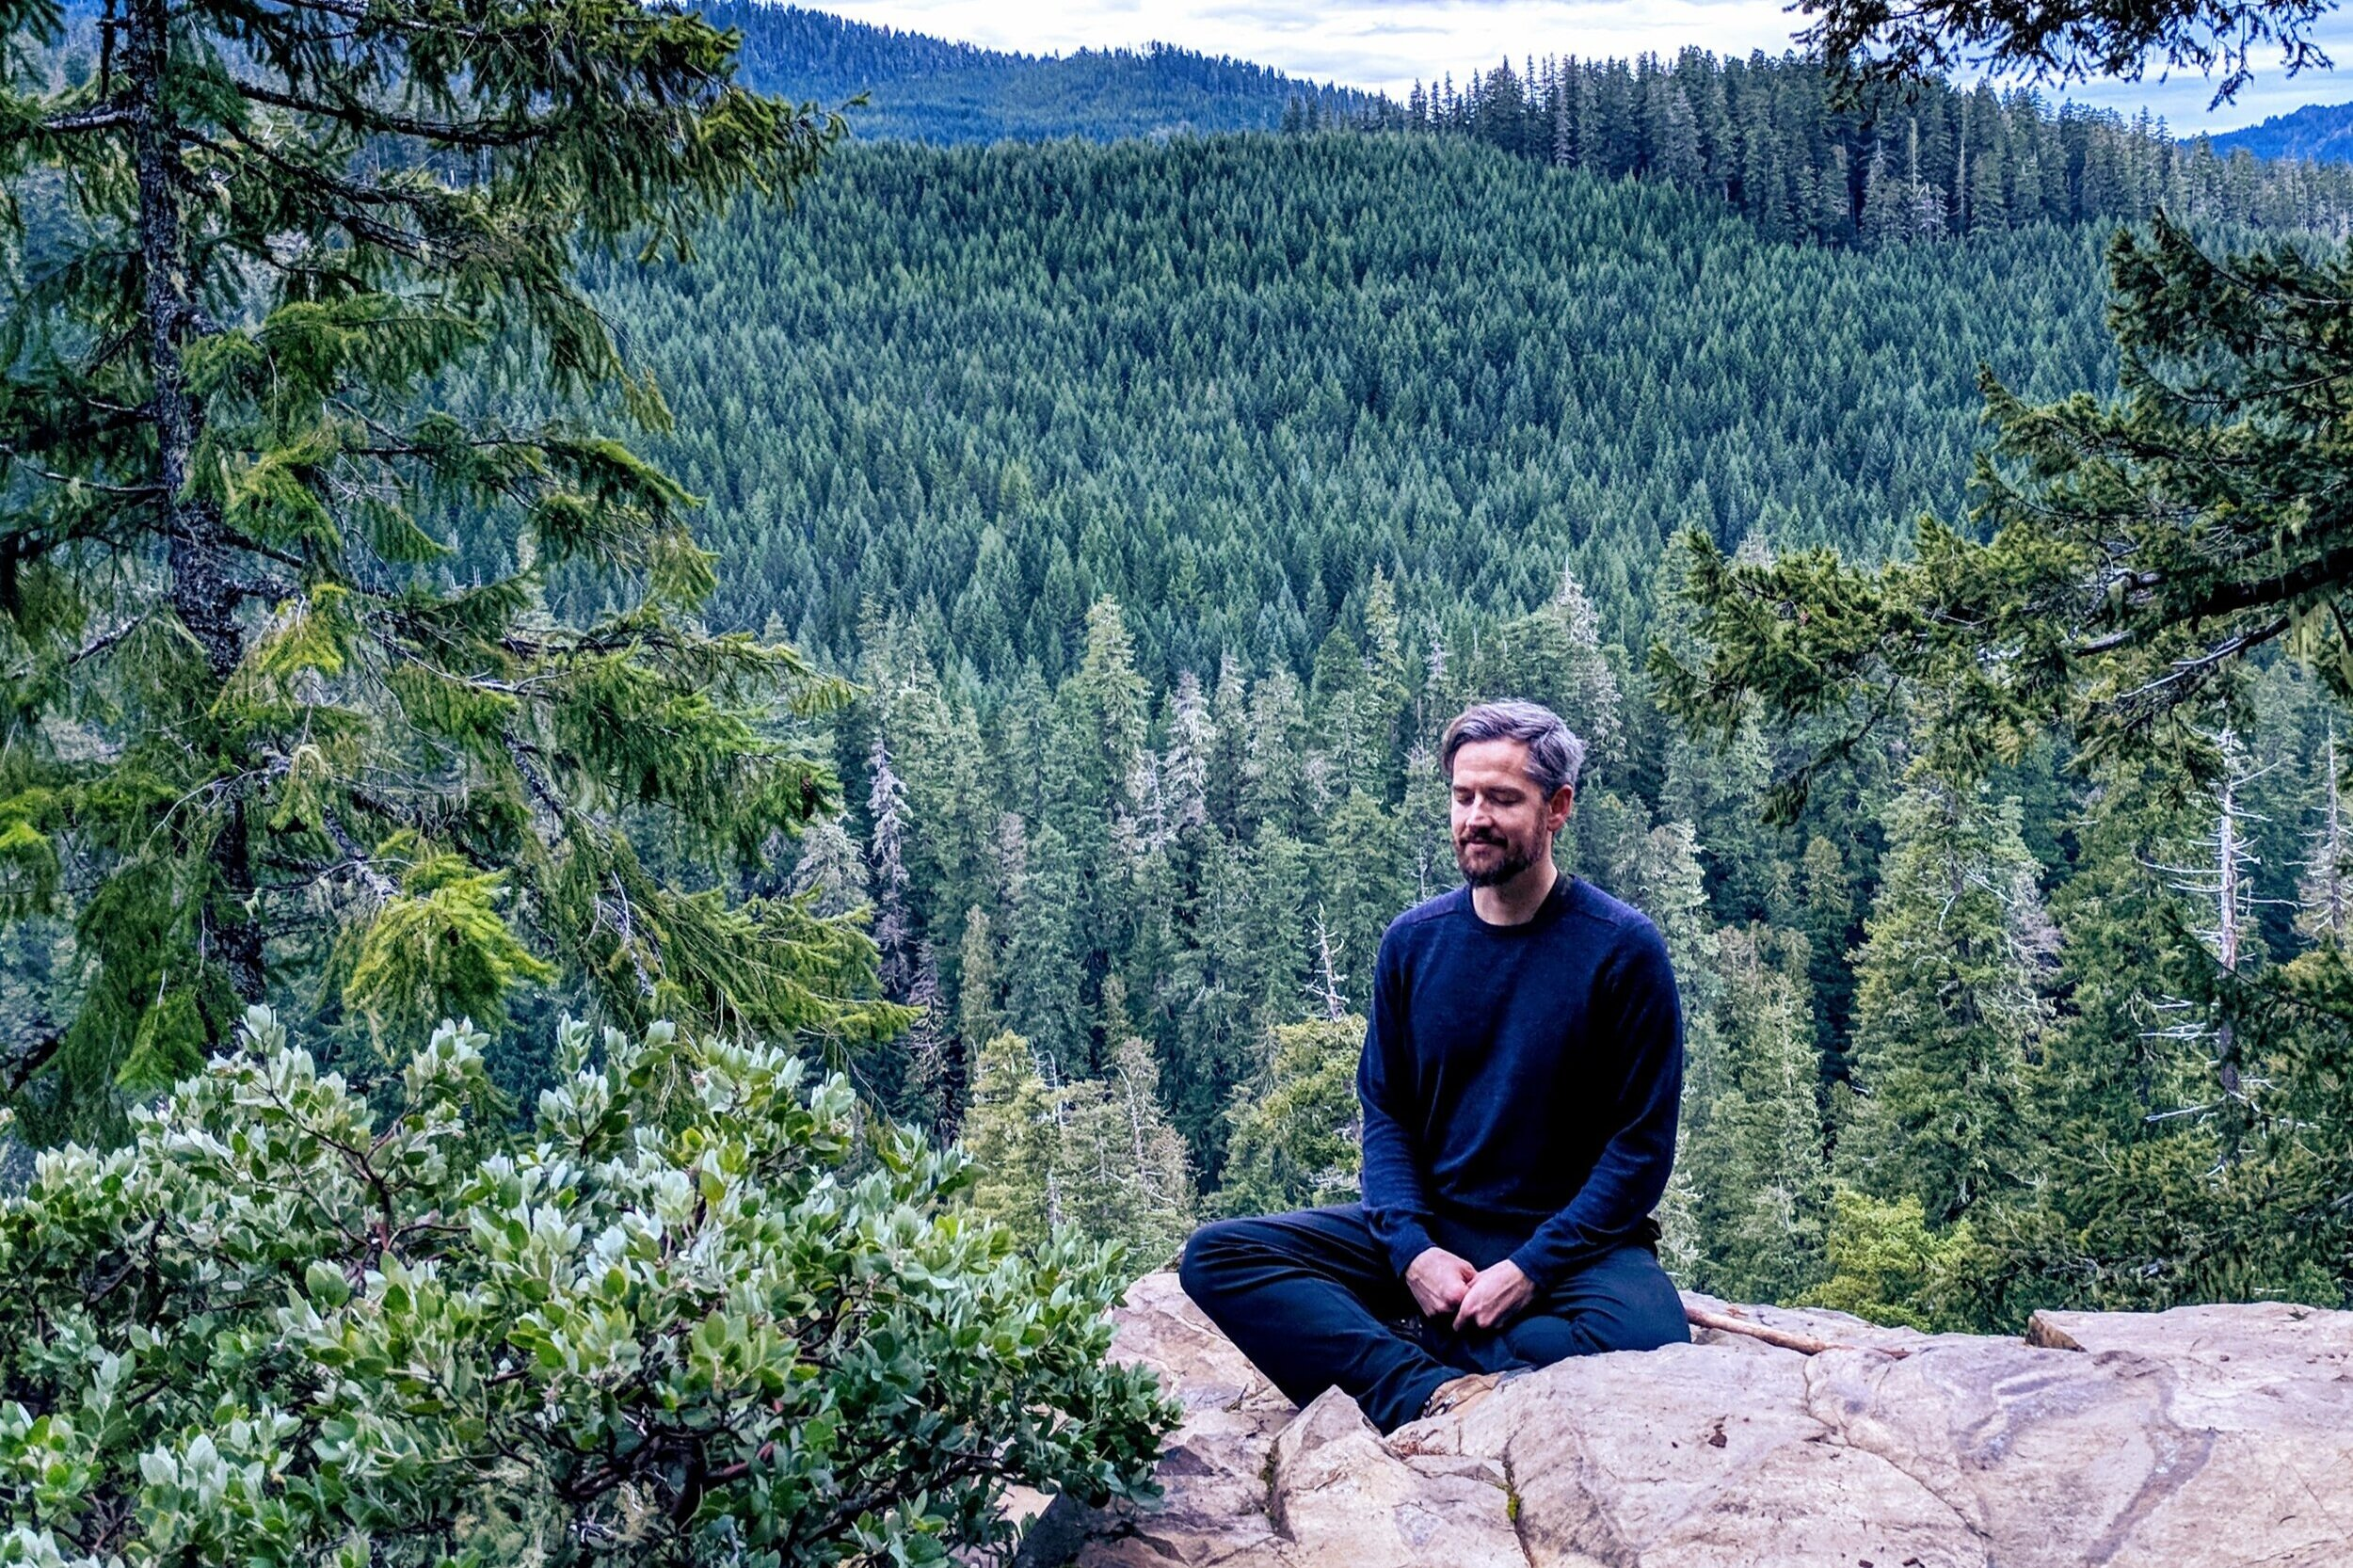 Meditation is a way of life - Mindfulness may start on the meditation cushion but must be integrated into everyday life and relationships.